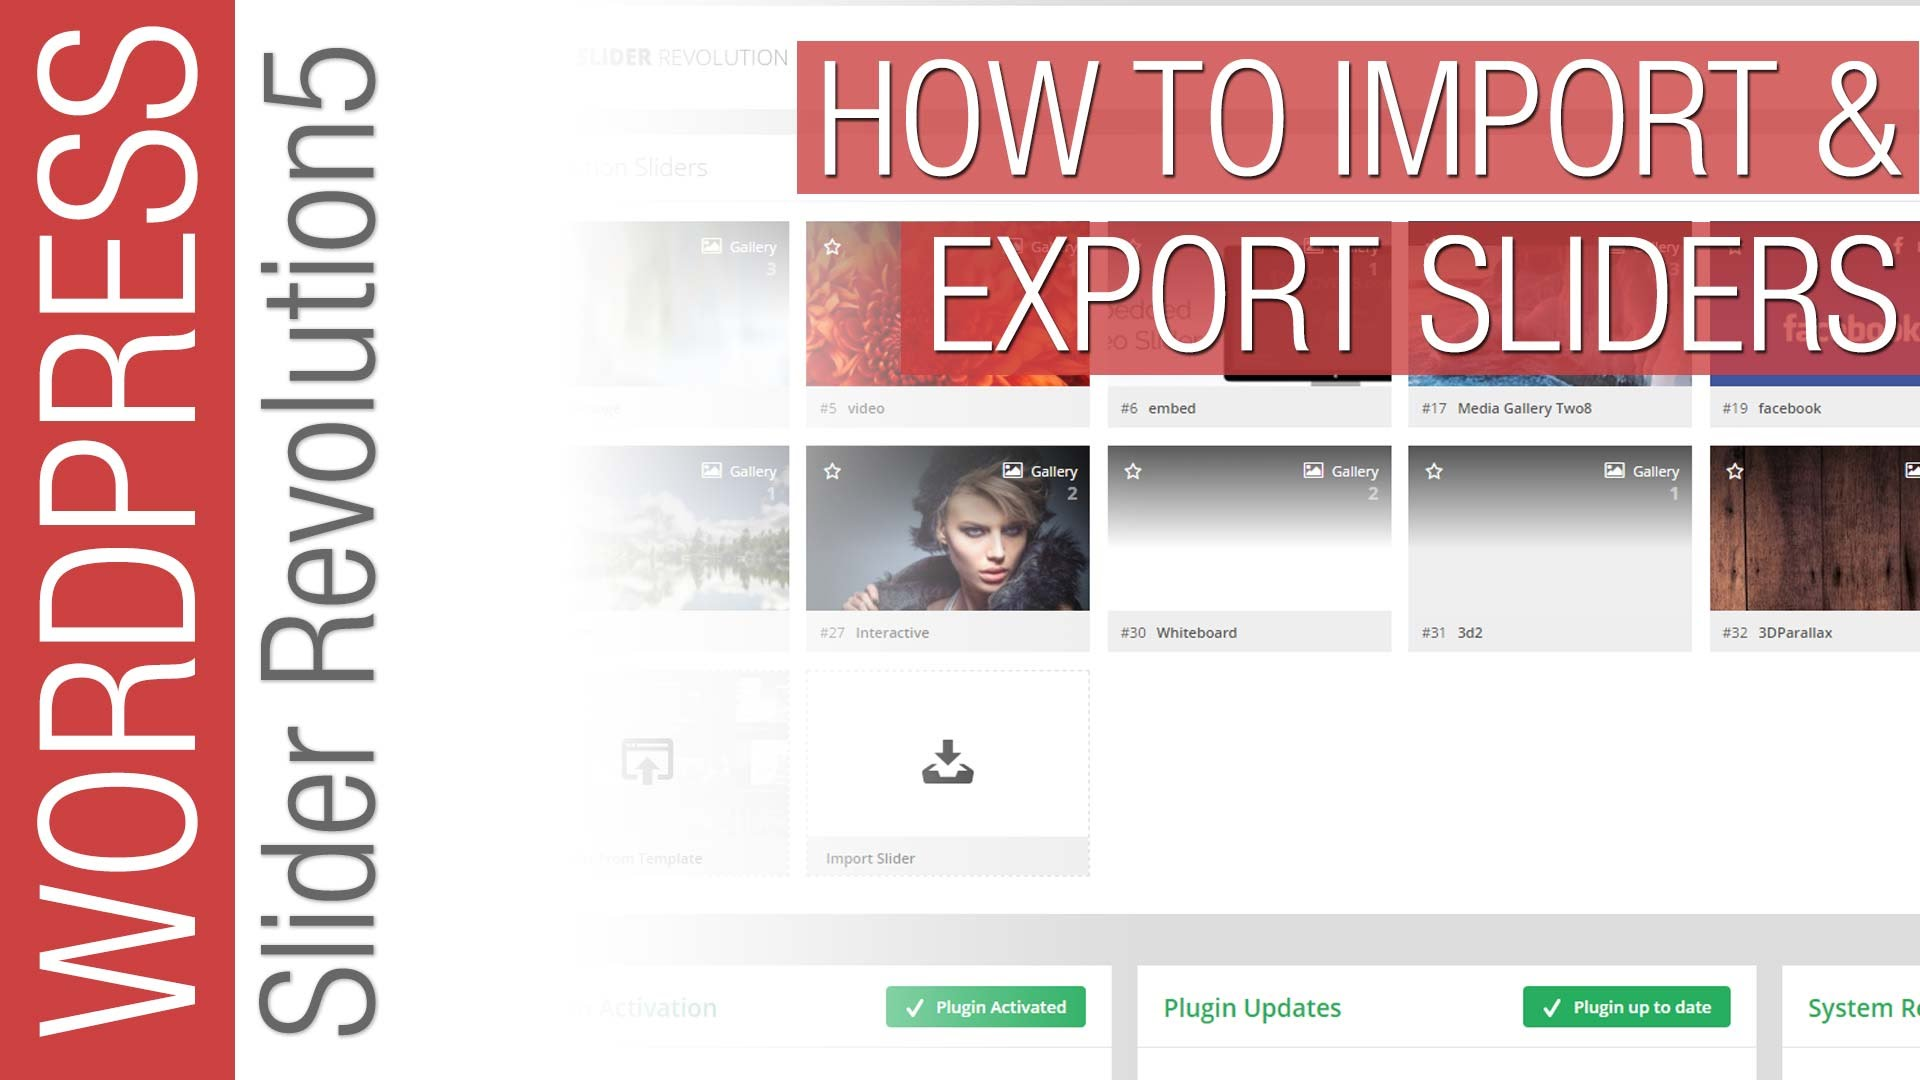 How To Import & Export Slider Revolution 5 Sliders